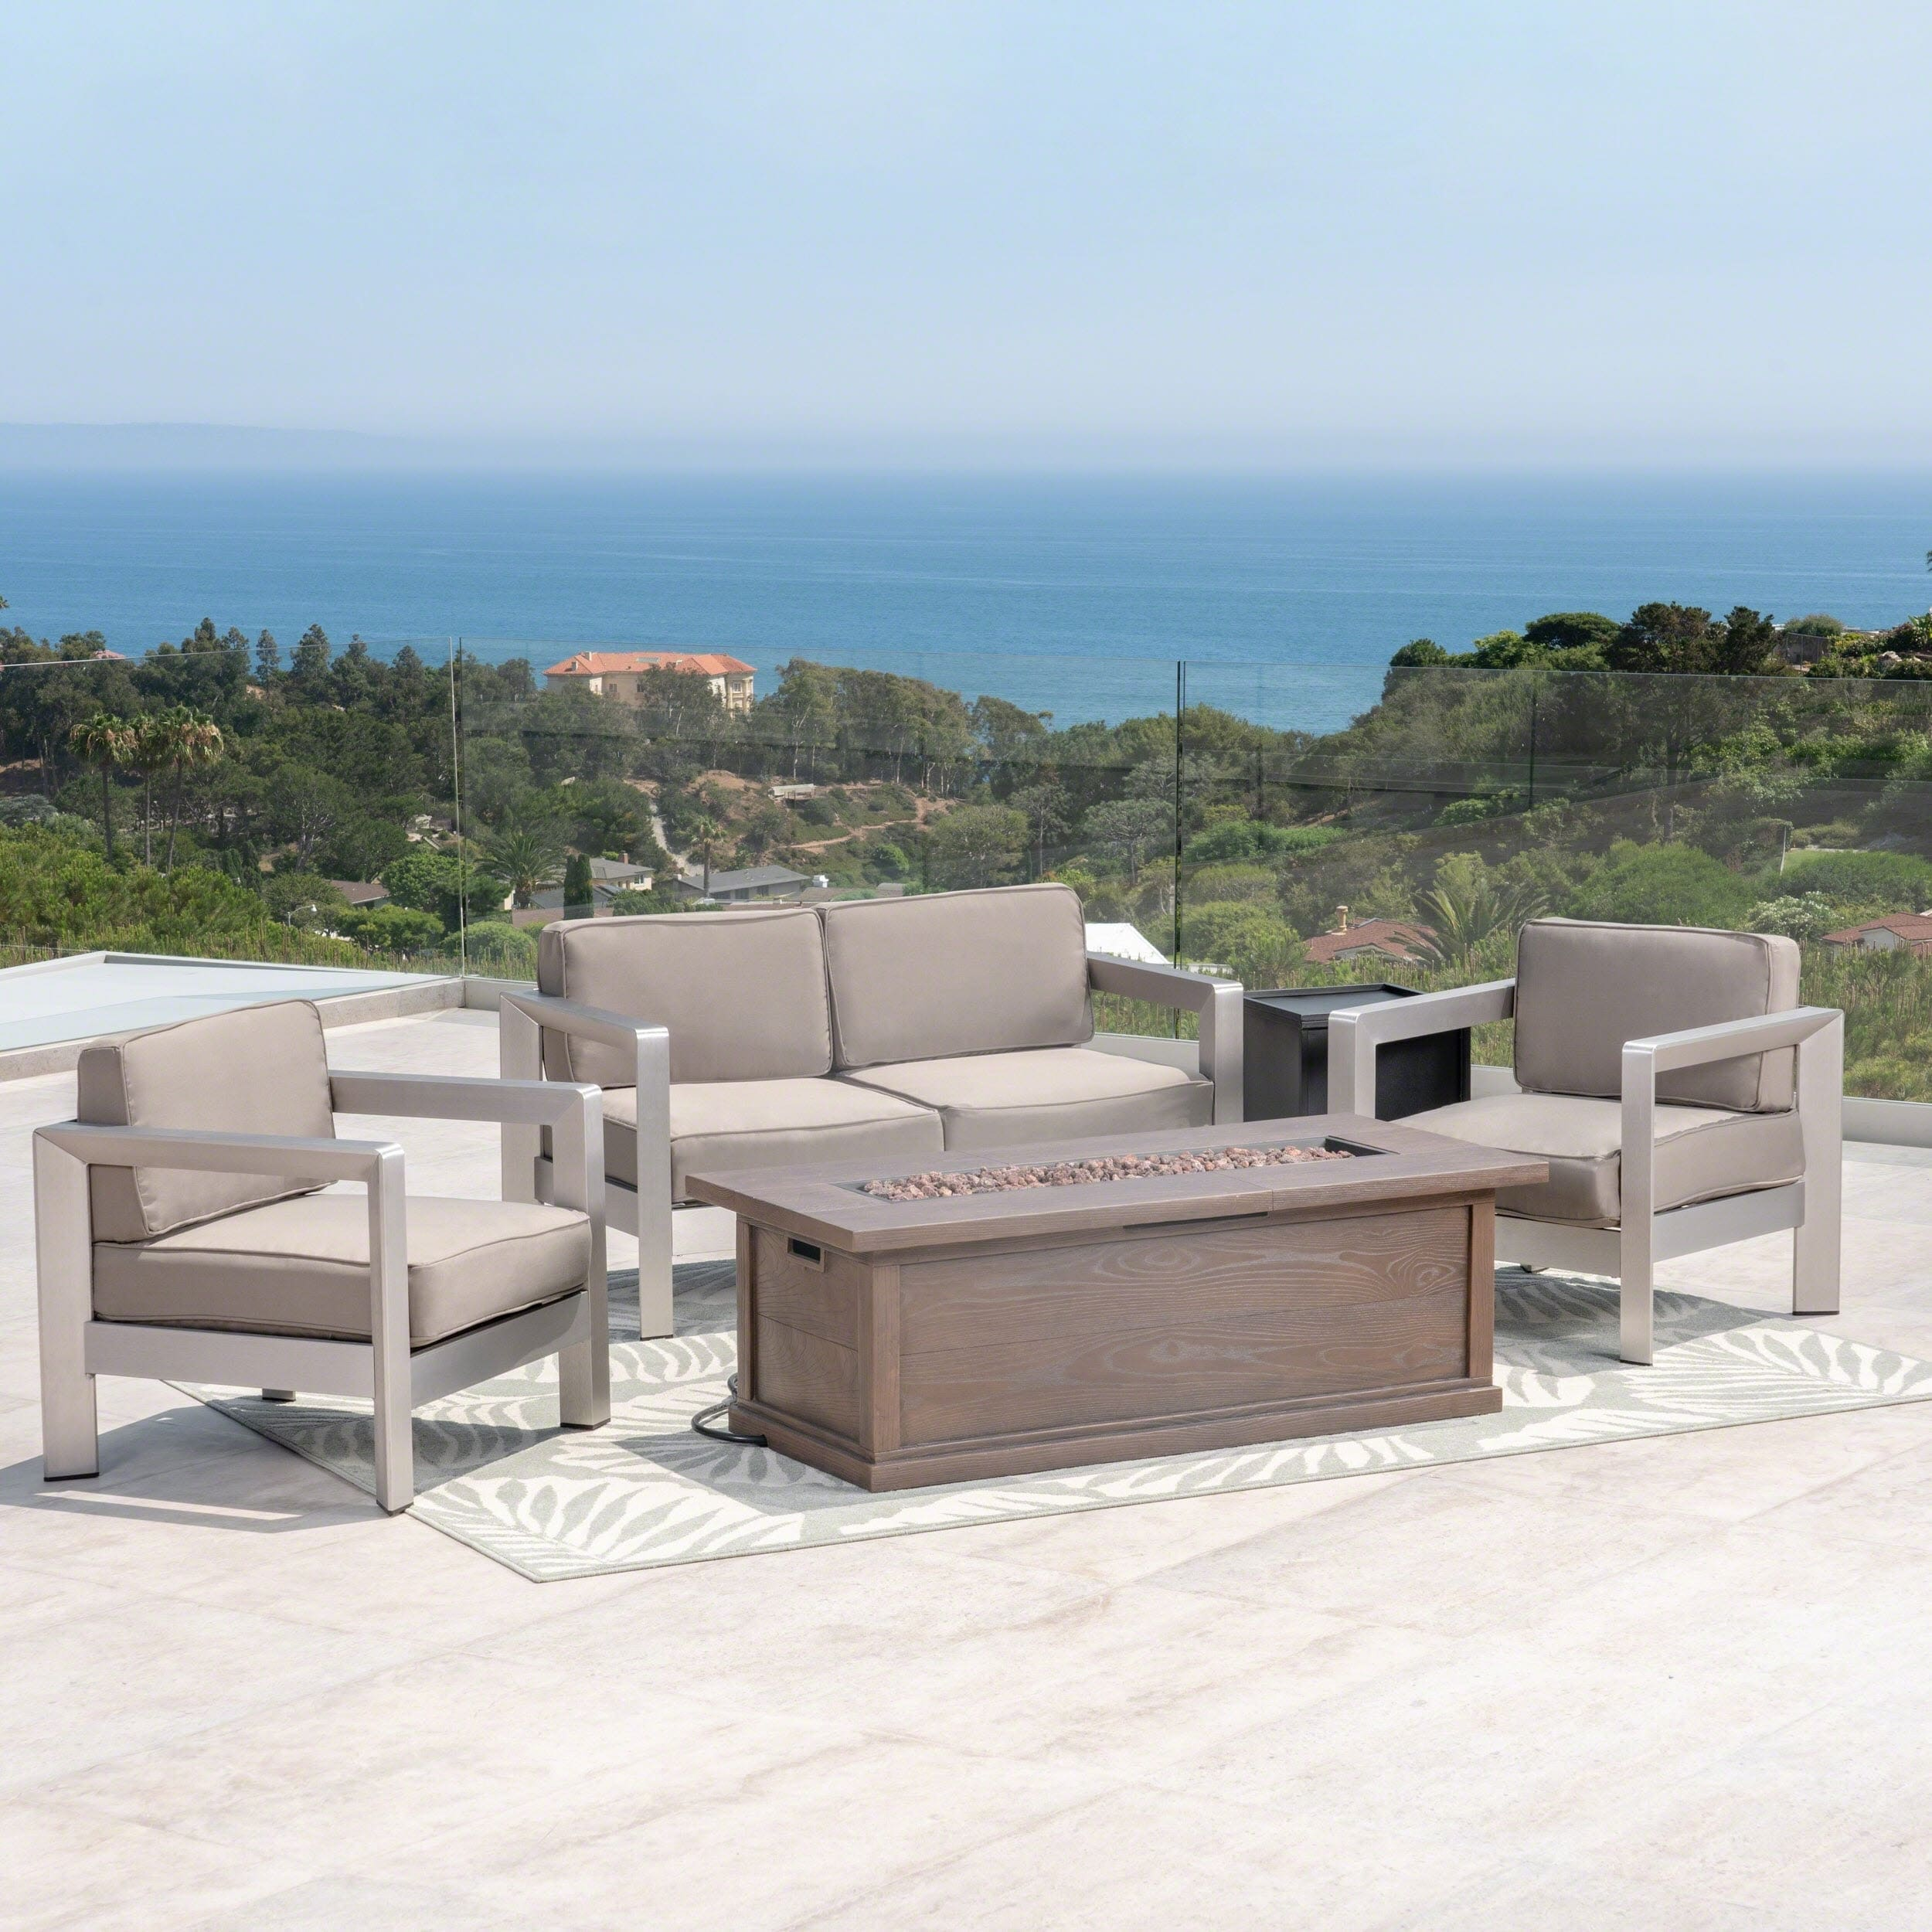 Christopher Knight Home Albion Outdoor 4-Seater Aluminum Chat Set with Fire Pit and Tank Holder by